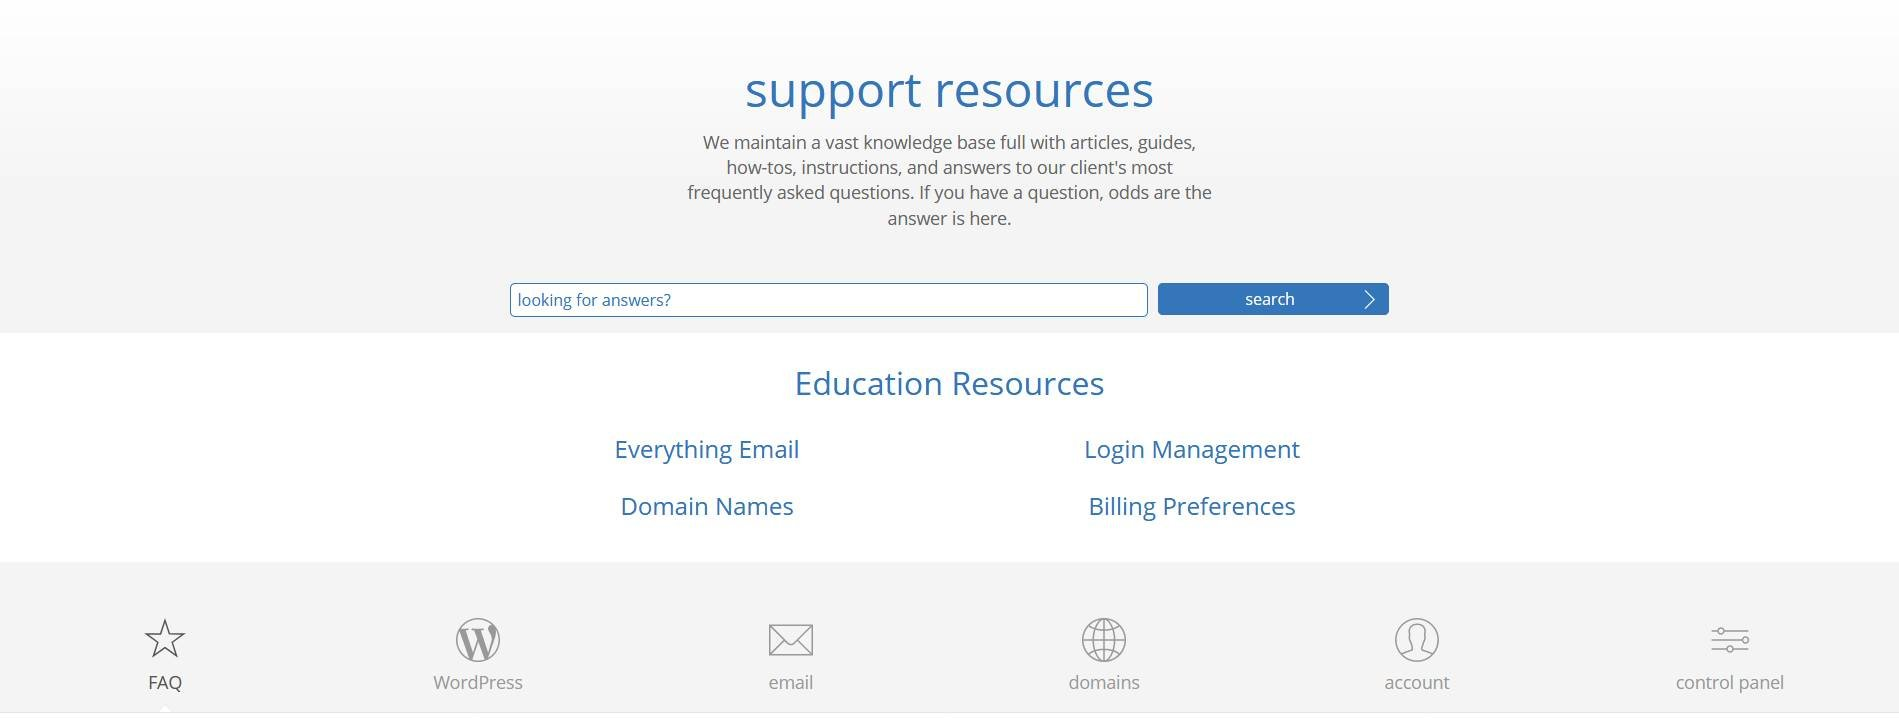 bluehost-support-resources